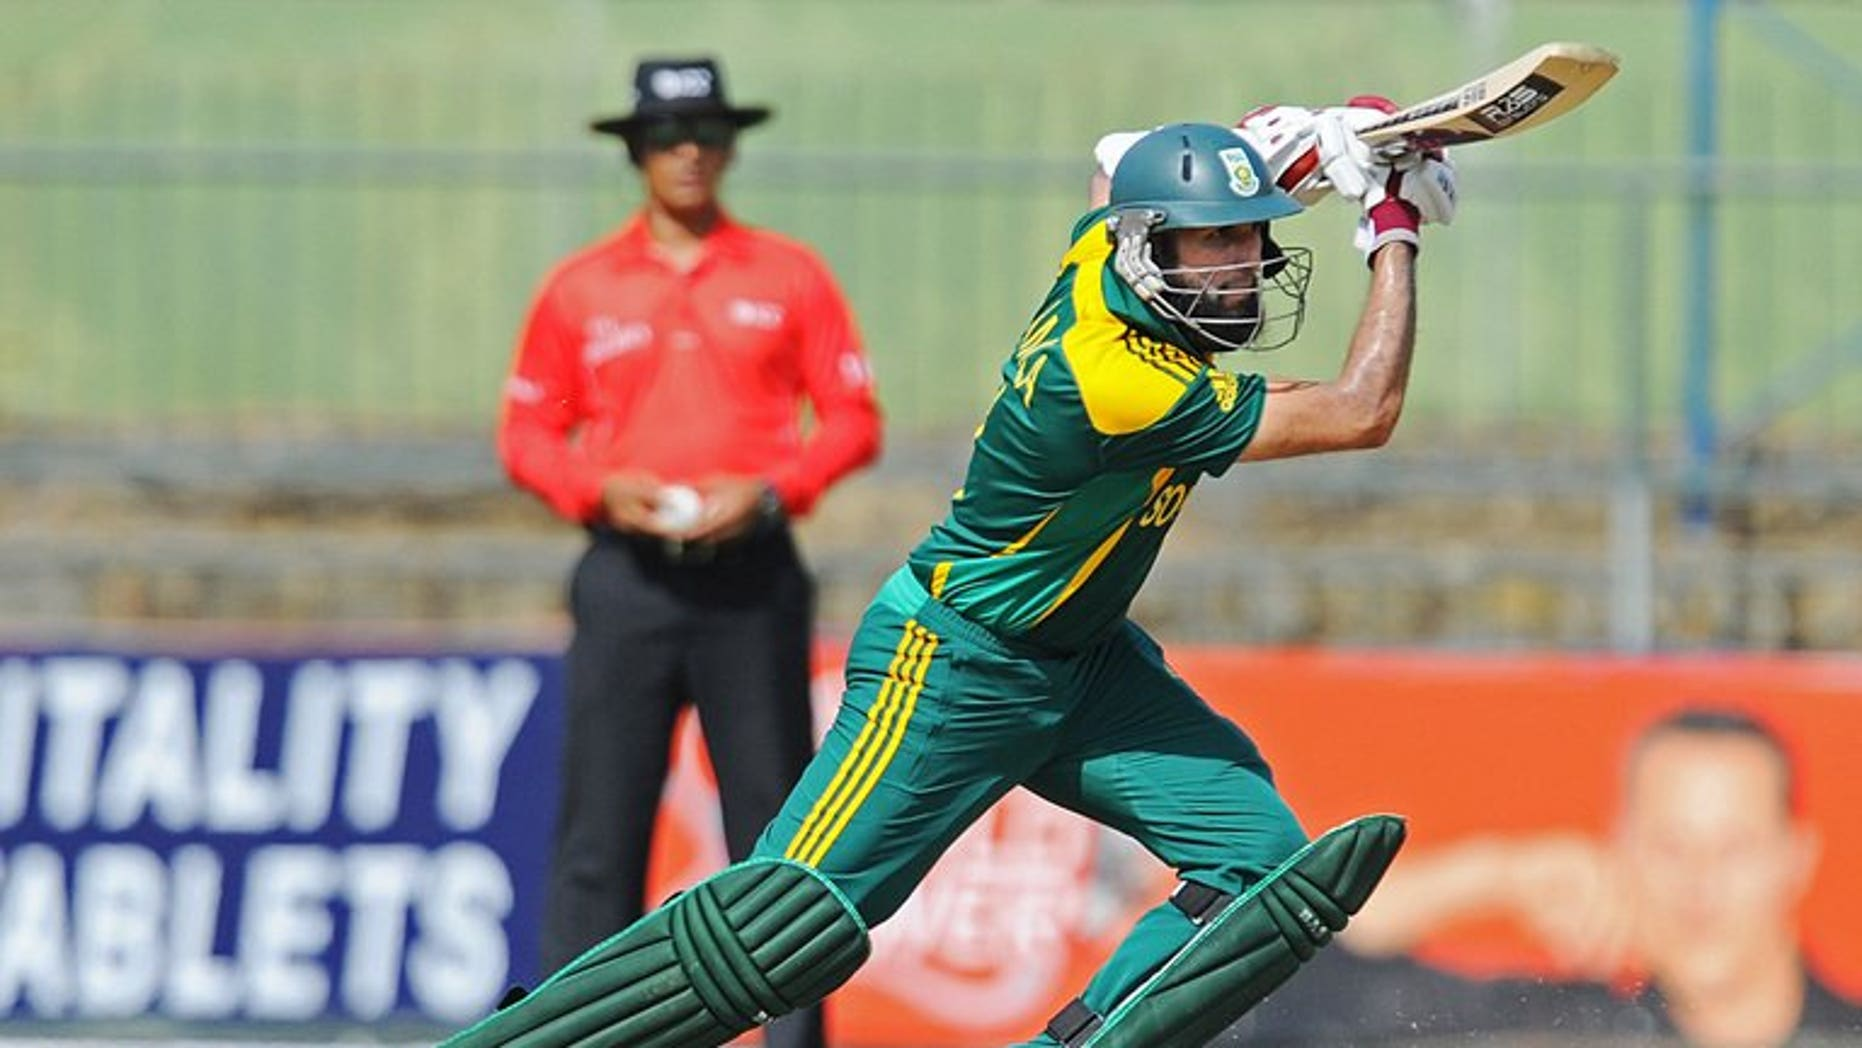 South African cricketer Hashim Amla plays a shot during the fourth One Day International with Sri Lankam July 28, 2013. Amla has joined Surrey until the end of the season, the English county side announced on Wednesday.